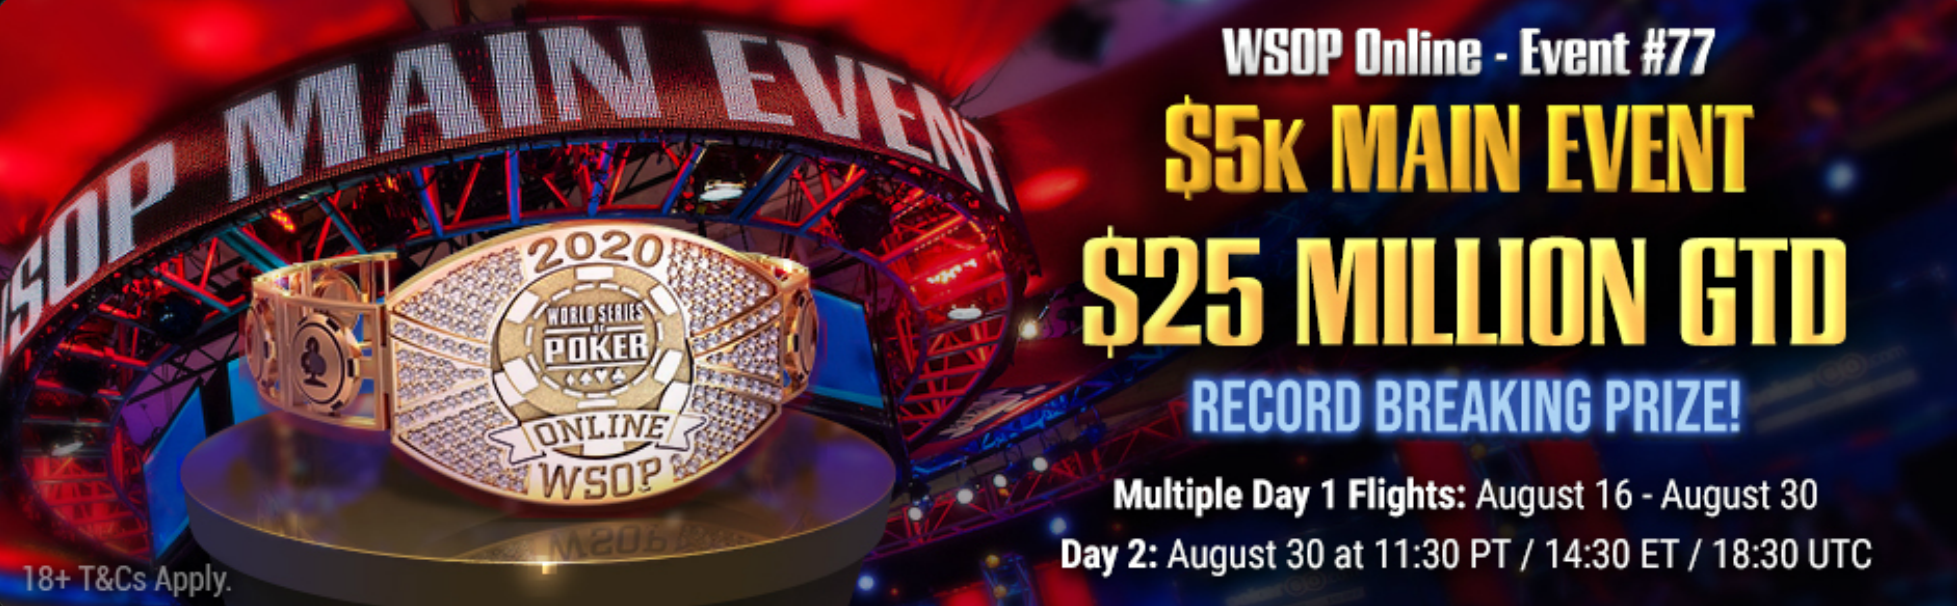 Global poker home series awarding largest online poker prize pool